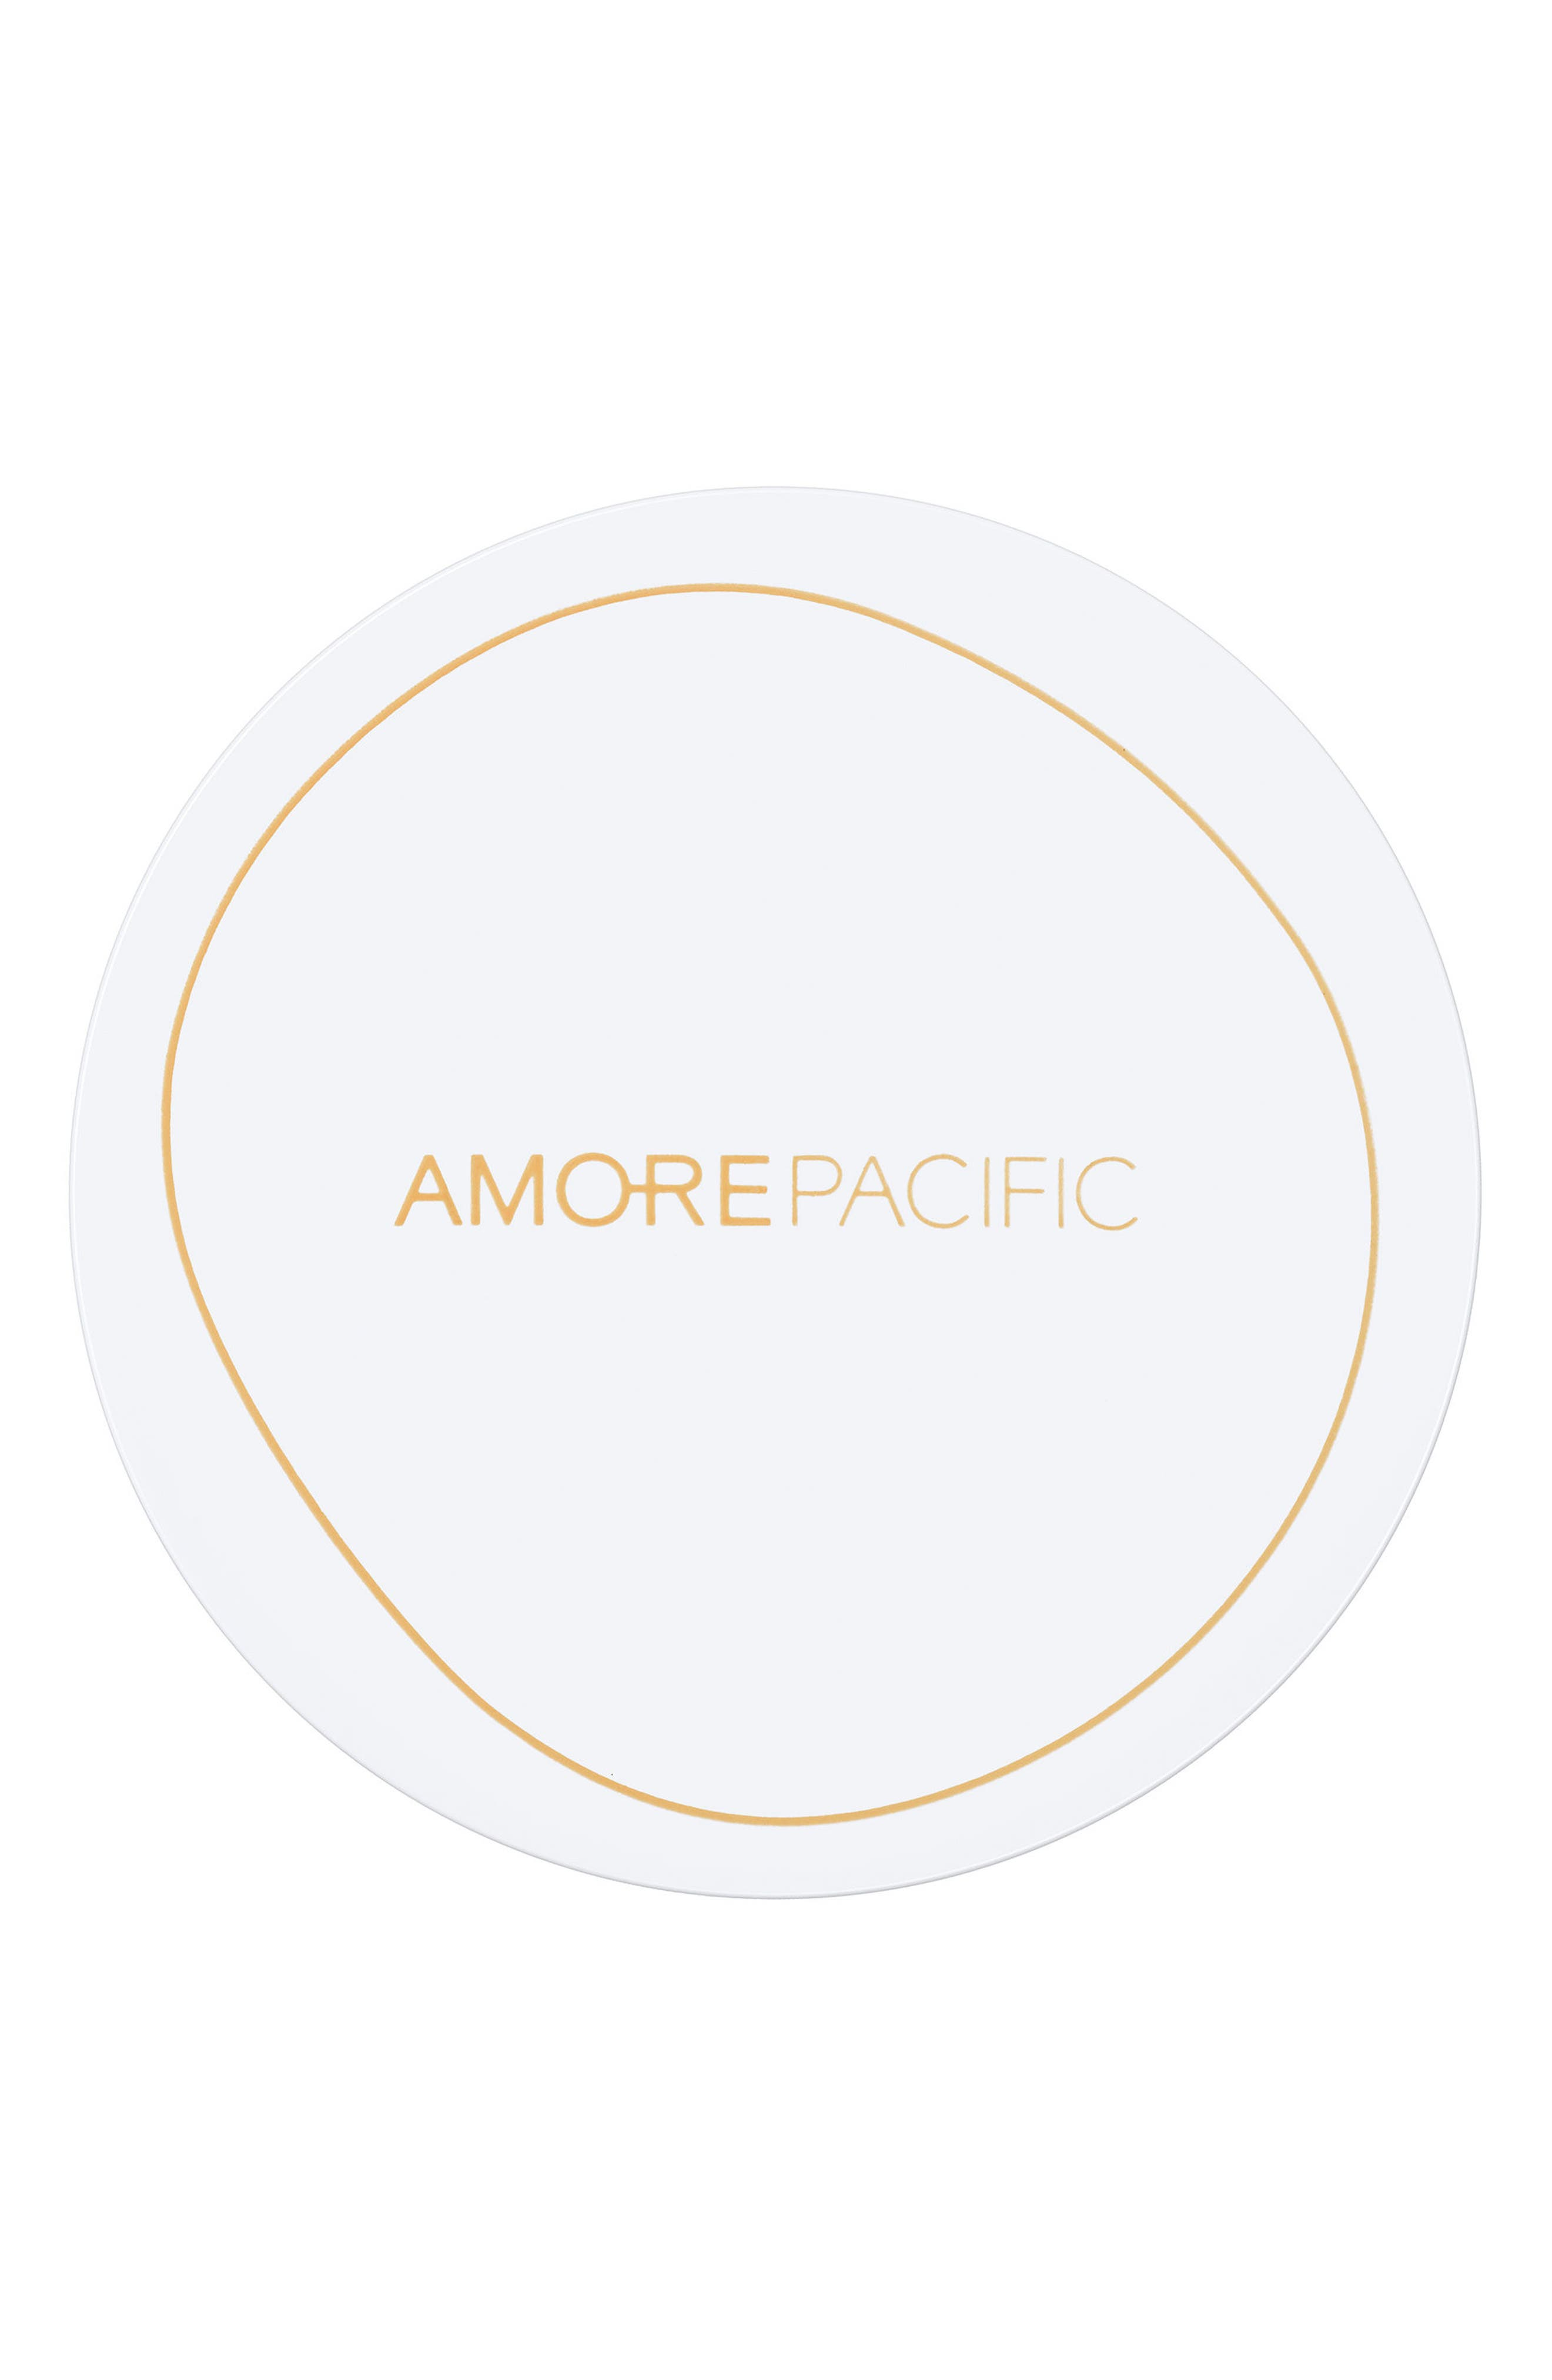 AMOREPACIFIC,                             'Color Control' Cushion Compact Broad Spectrum SPF 50,                             Alternate thumbnail 3, color,                             106 - MEDIUM PINK